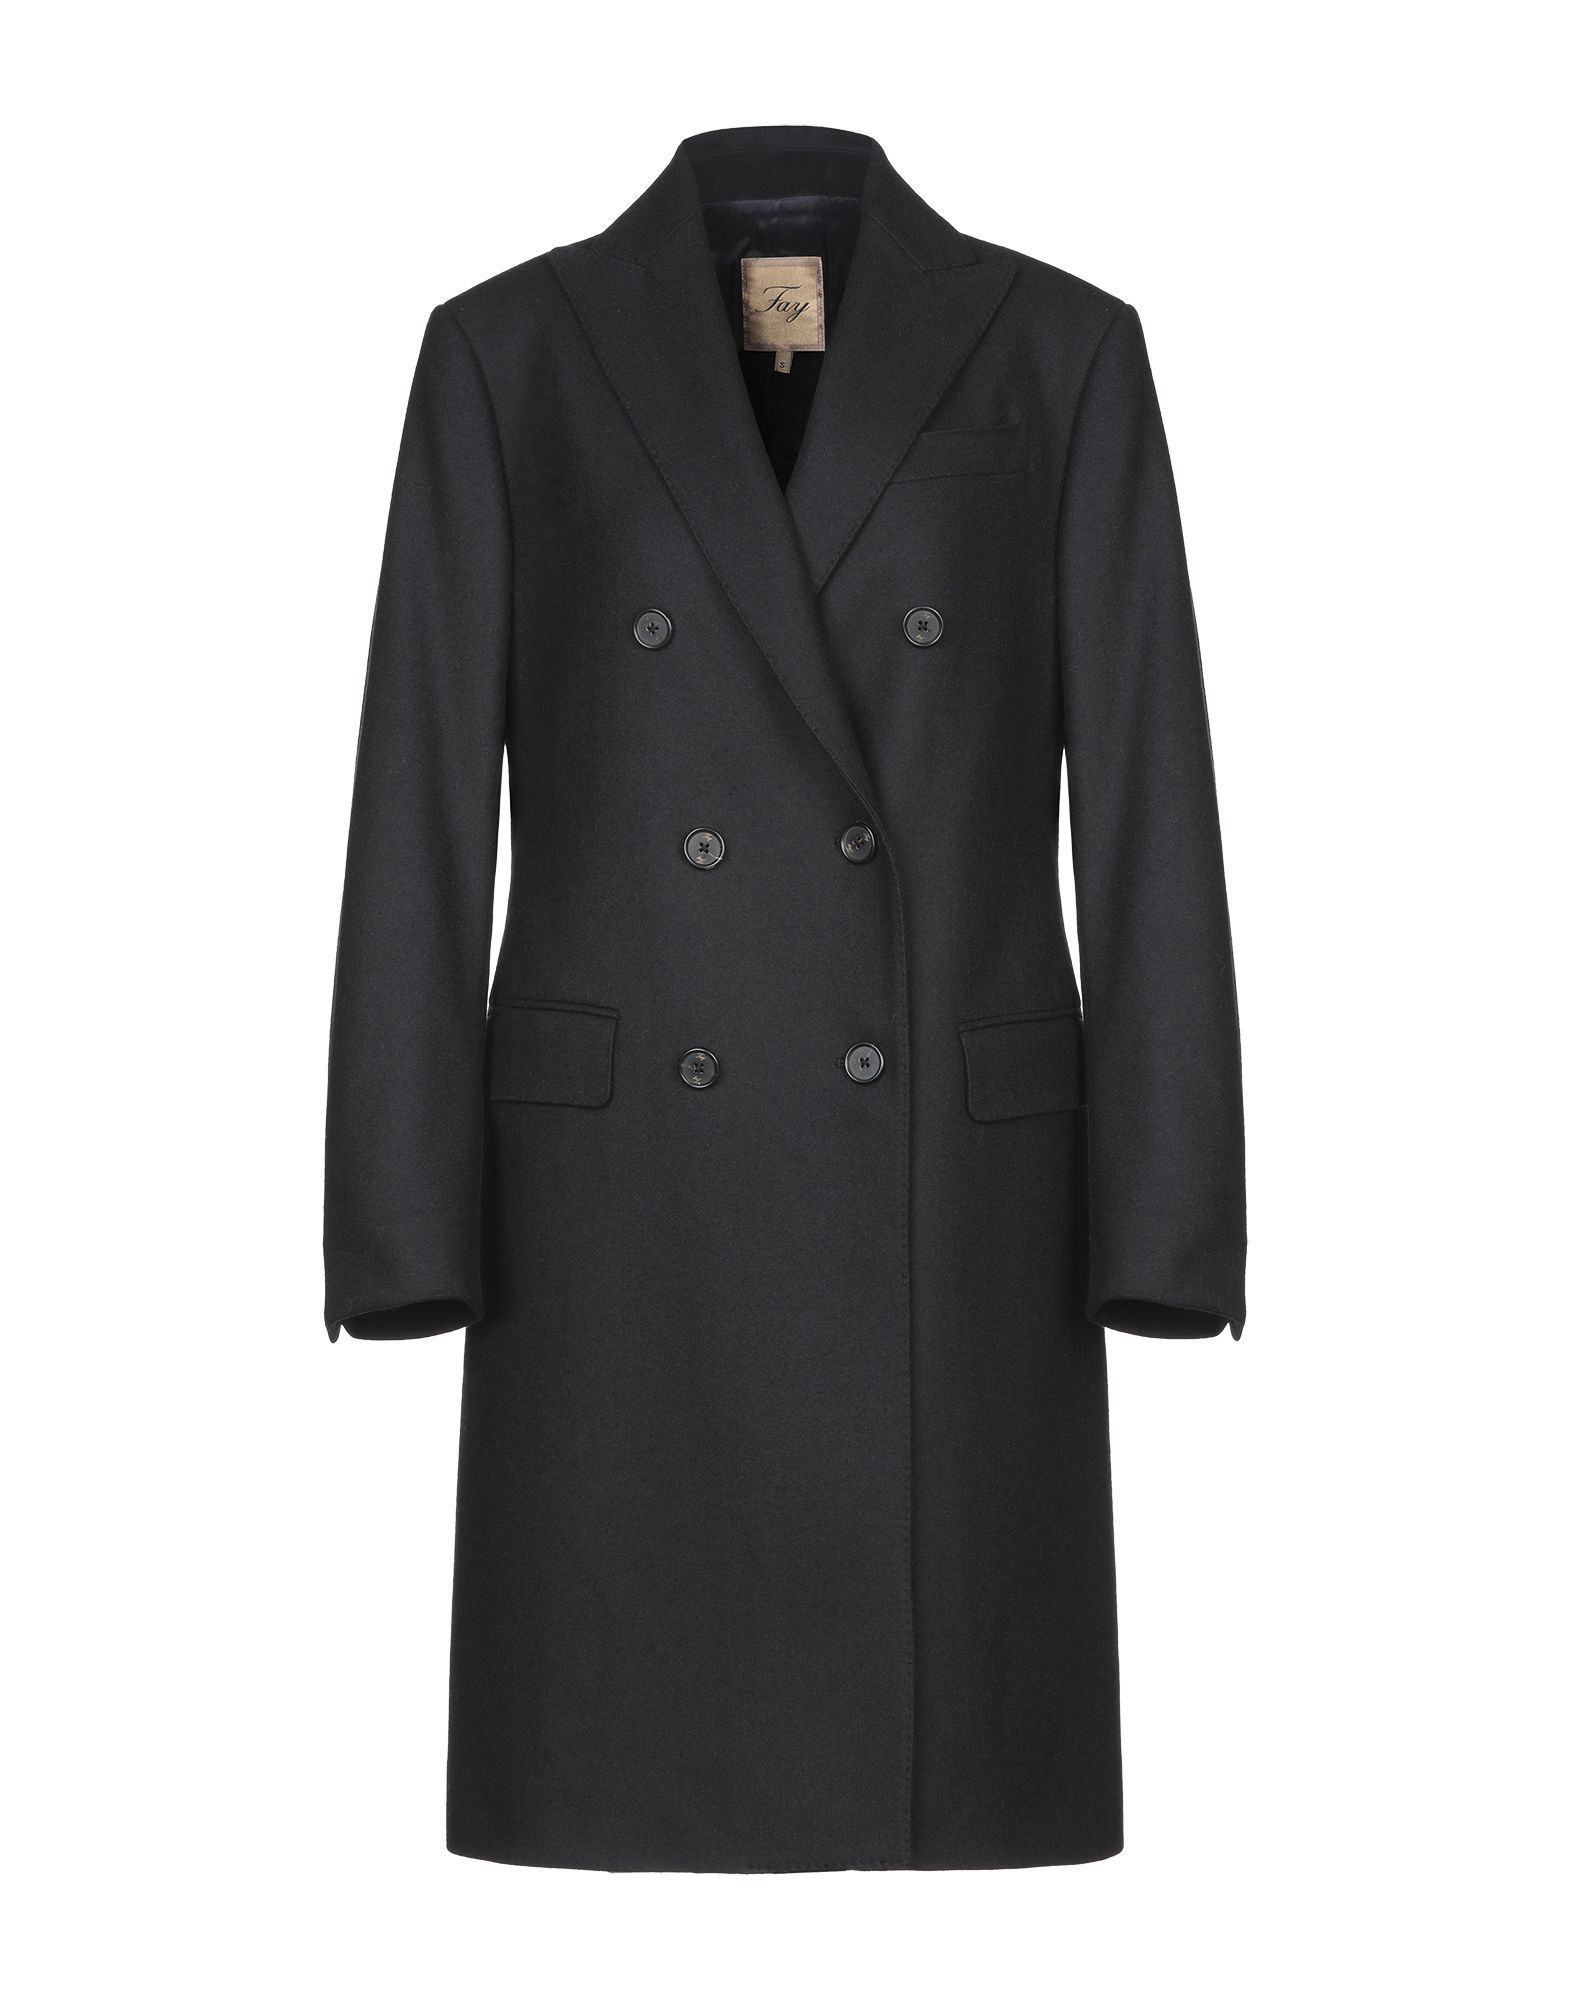 Fay Black Wool Double Breasted Overcoat